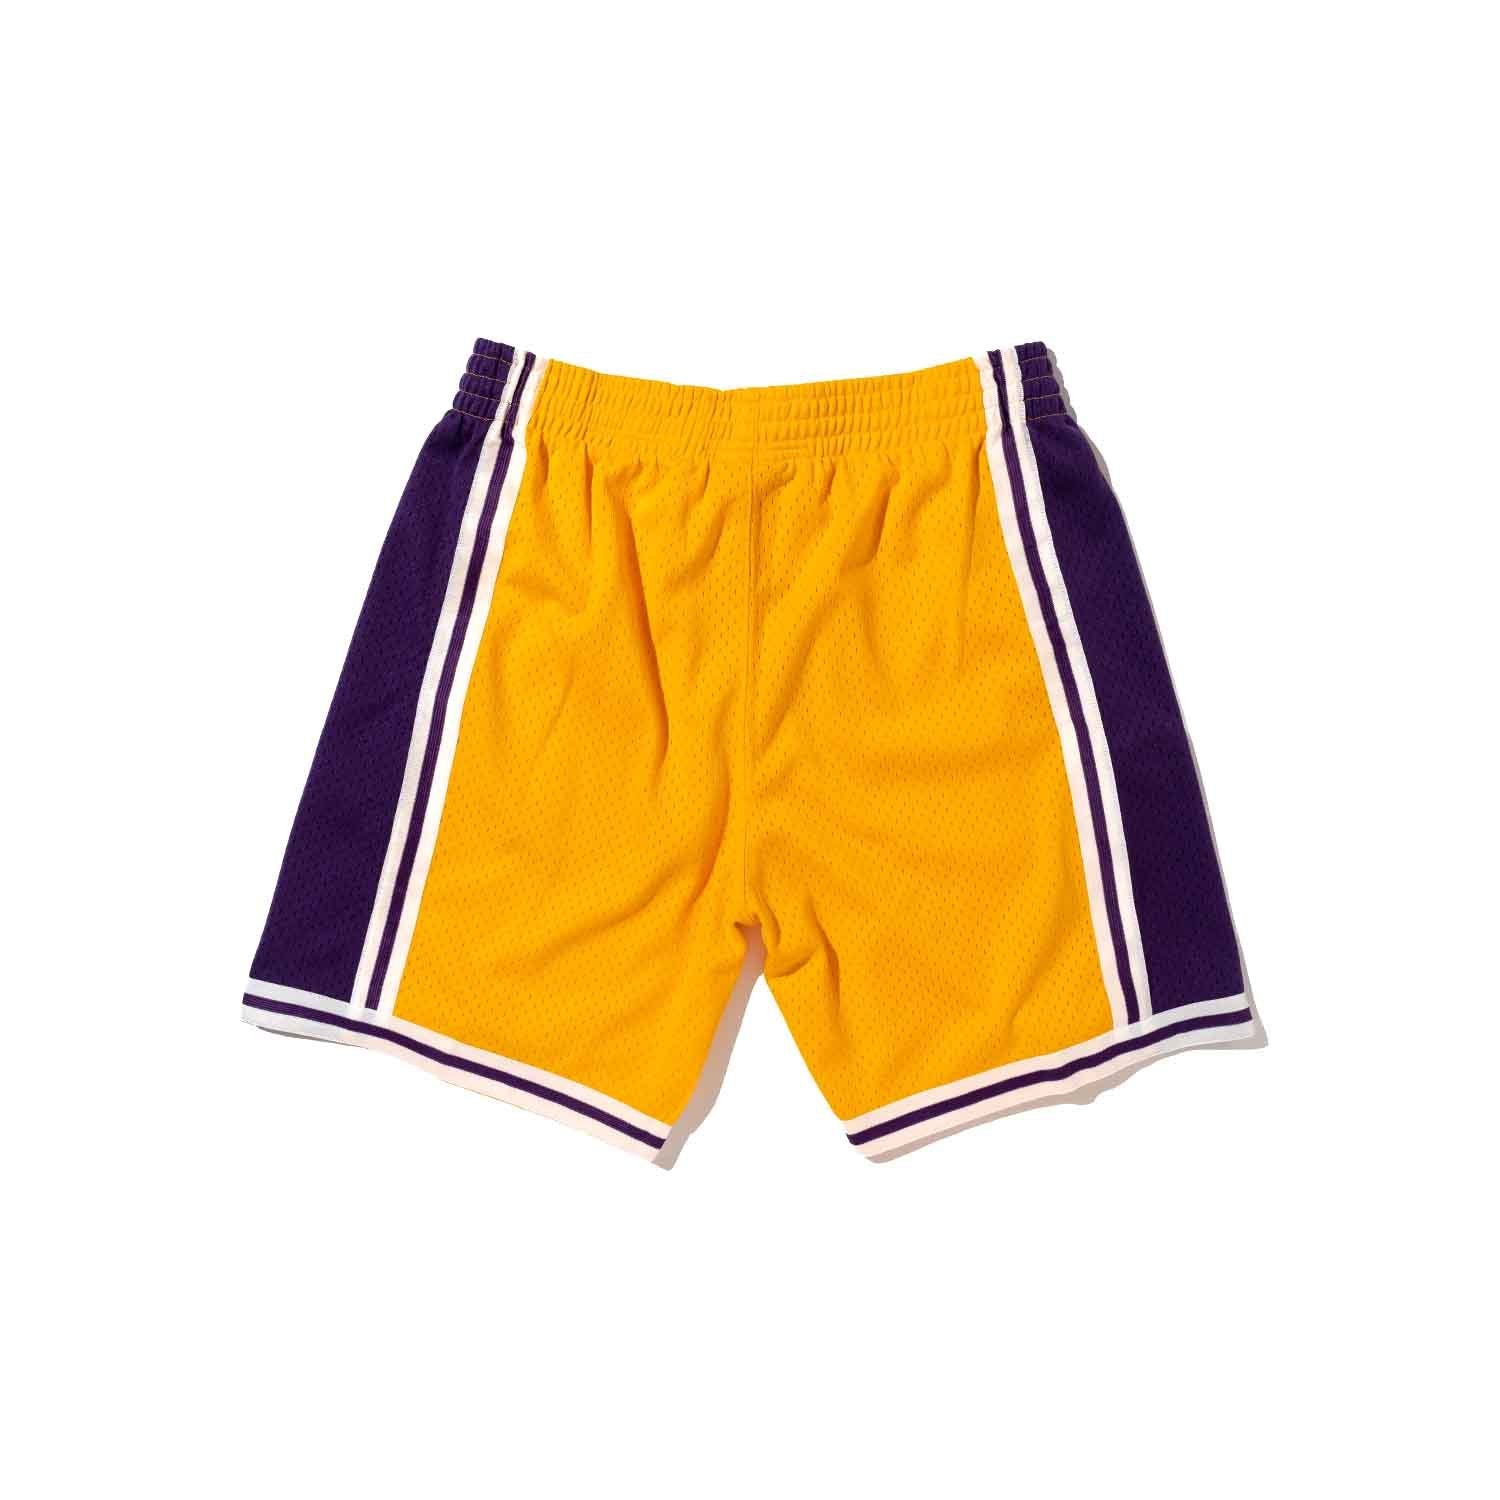 Los Angeles Lakers Swingman Shorts